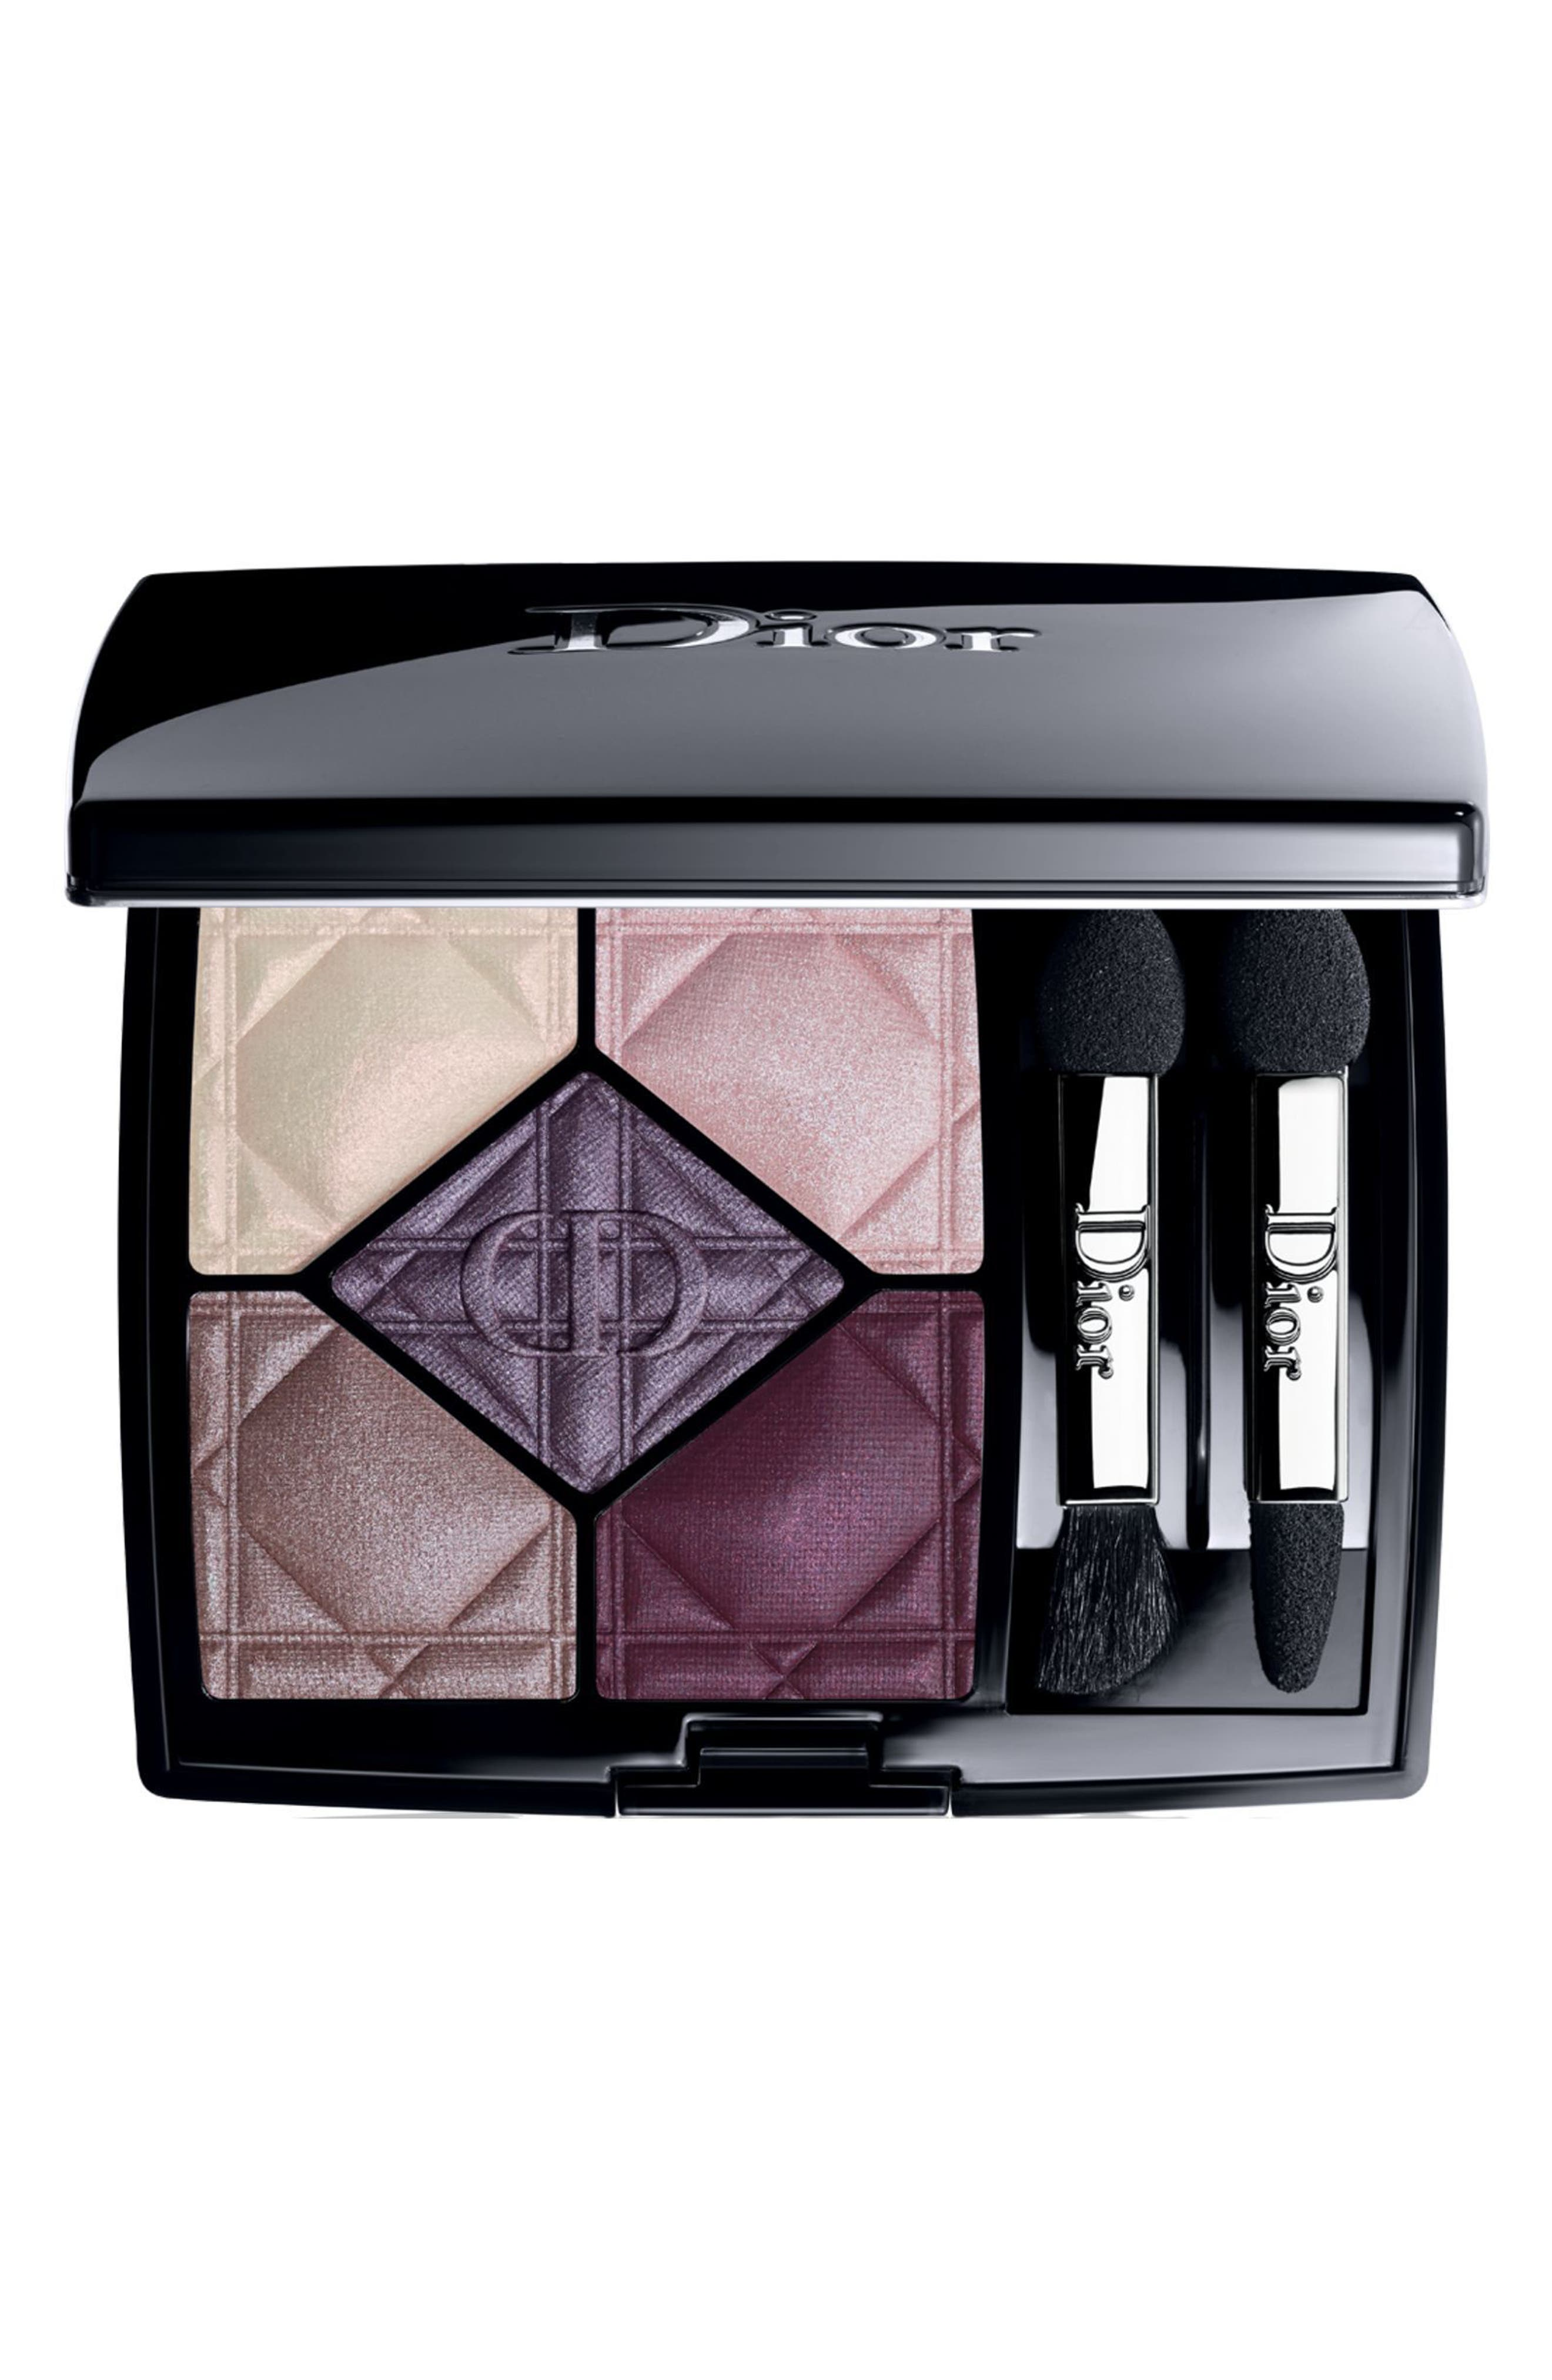 Dior 5 Couleurs Couture Eyeshadow Palette - 157 Magnify